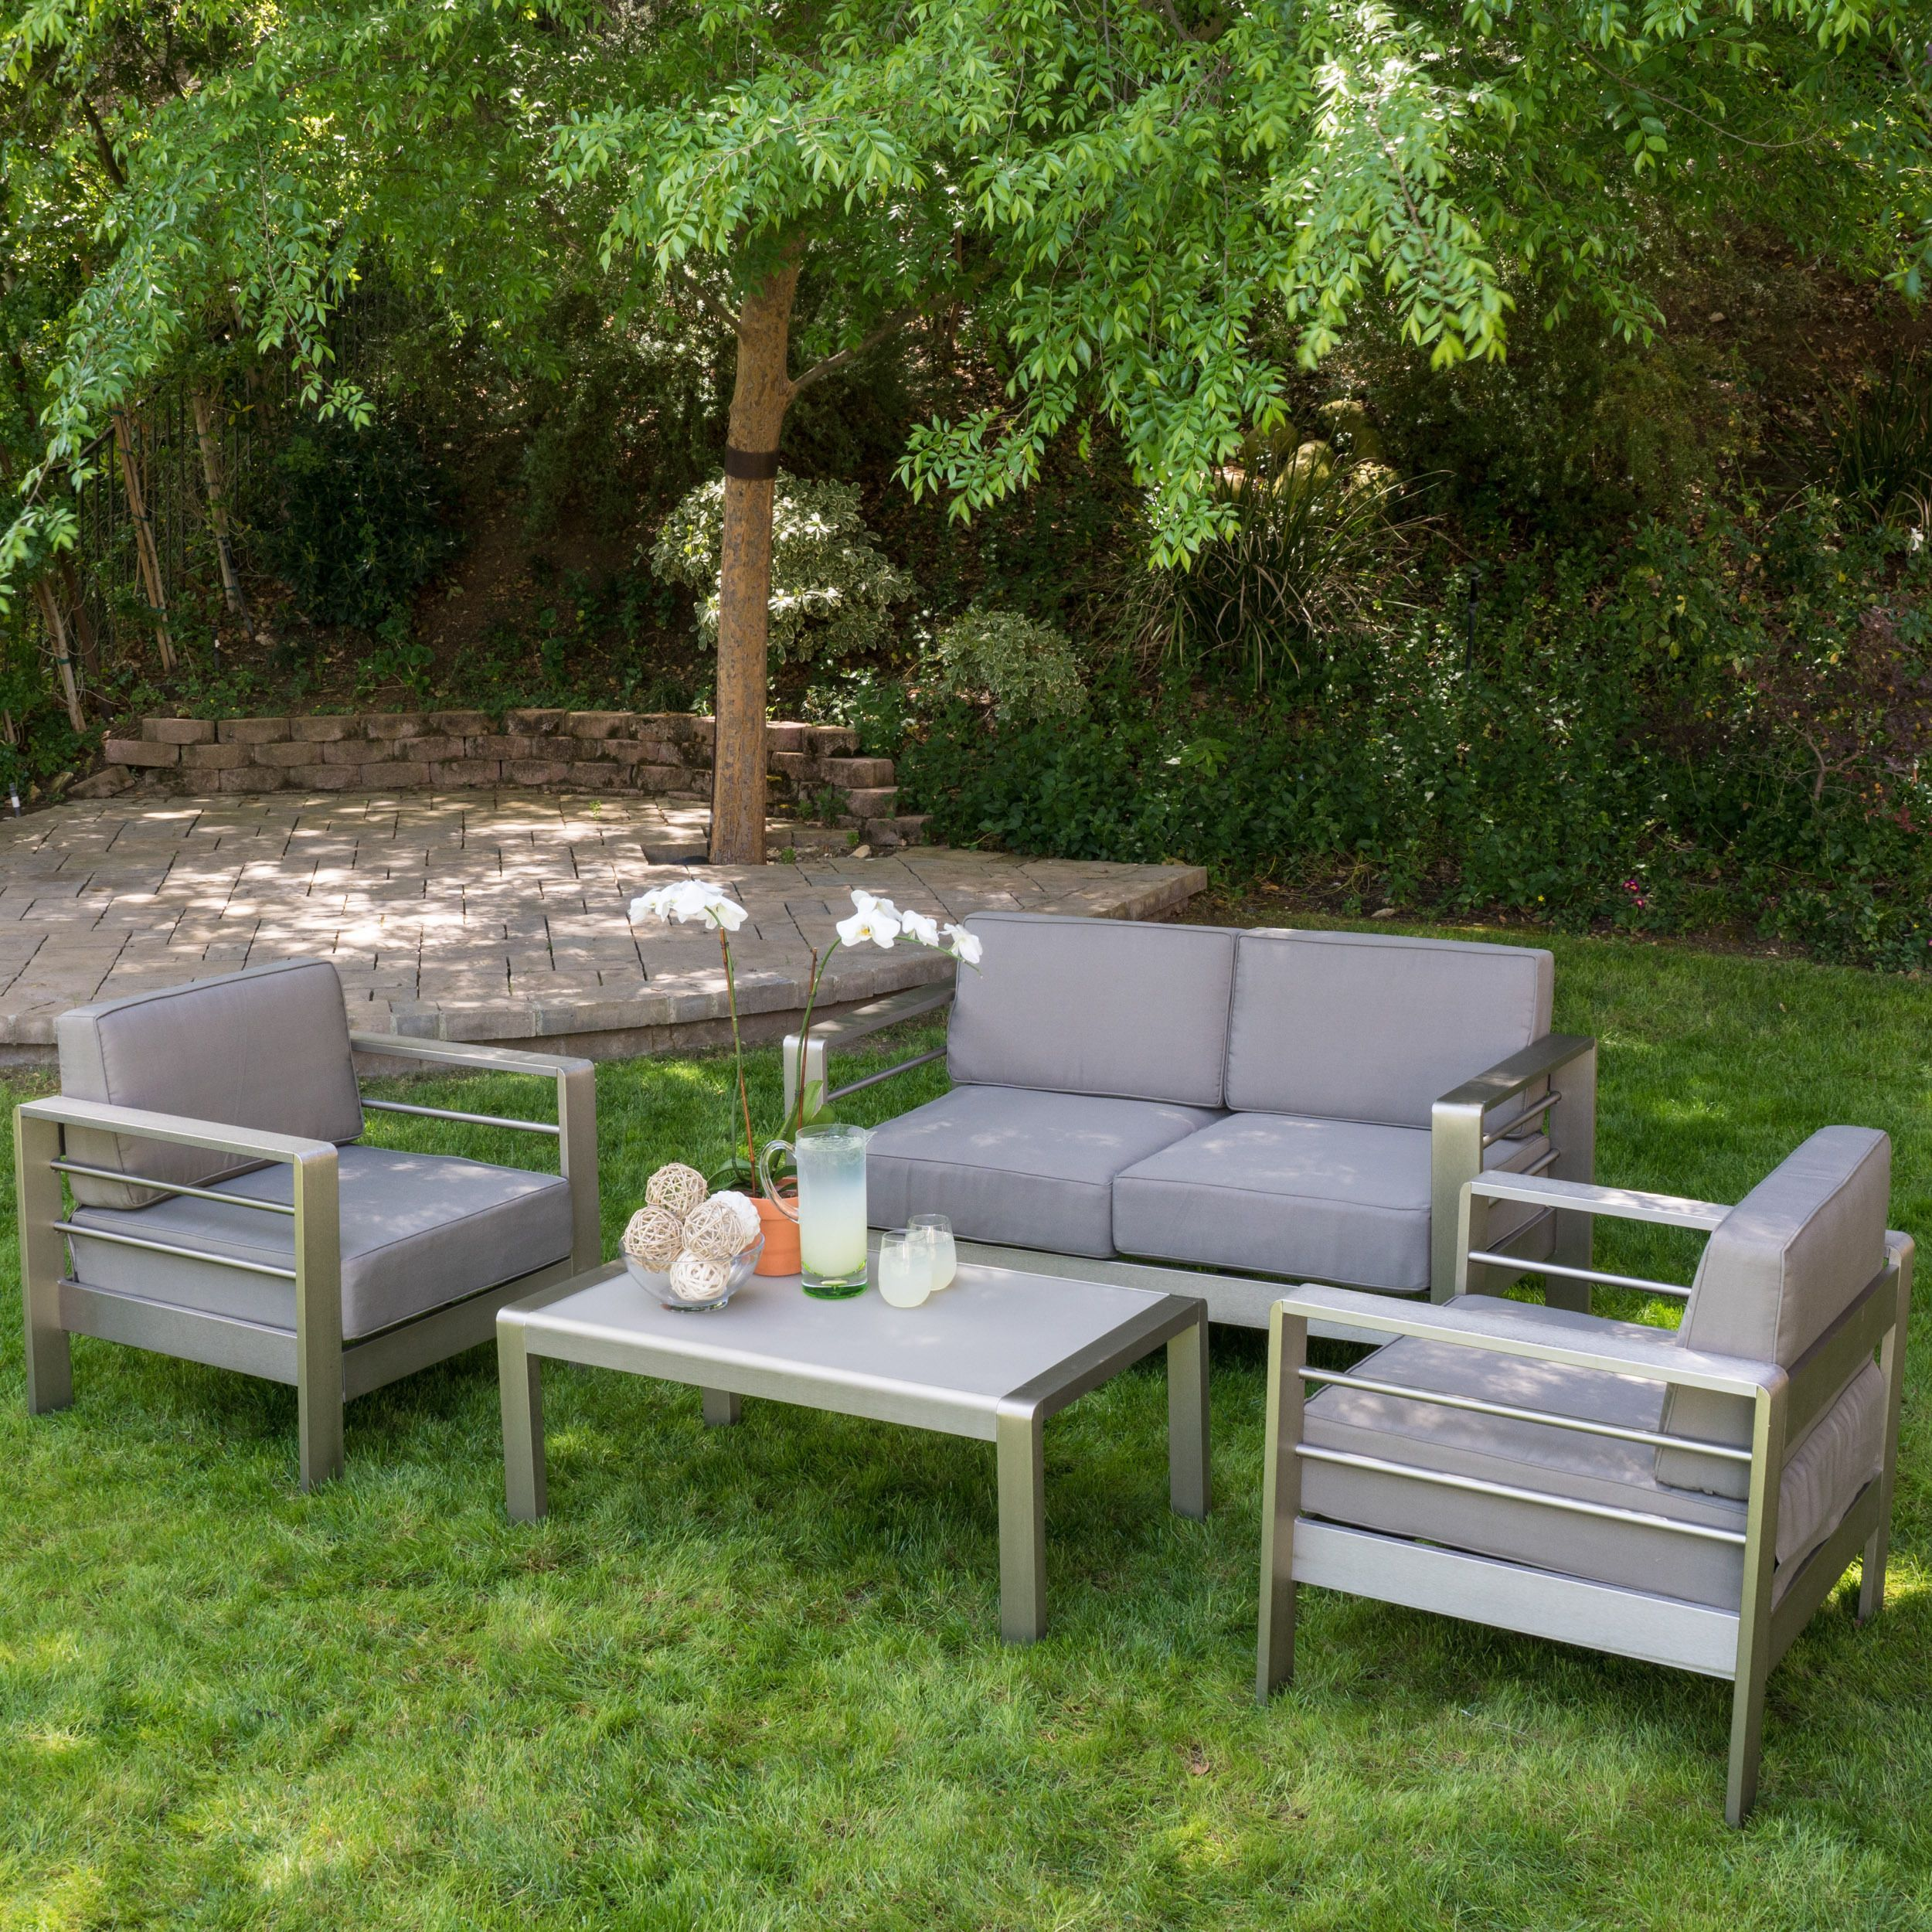 Cape Coral Outdoor 4 Seater Chat Set With Coffee Table By